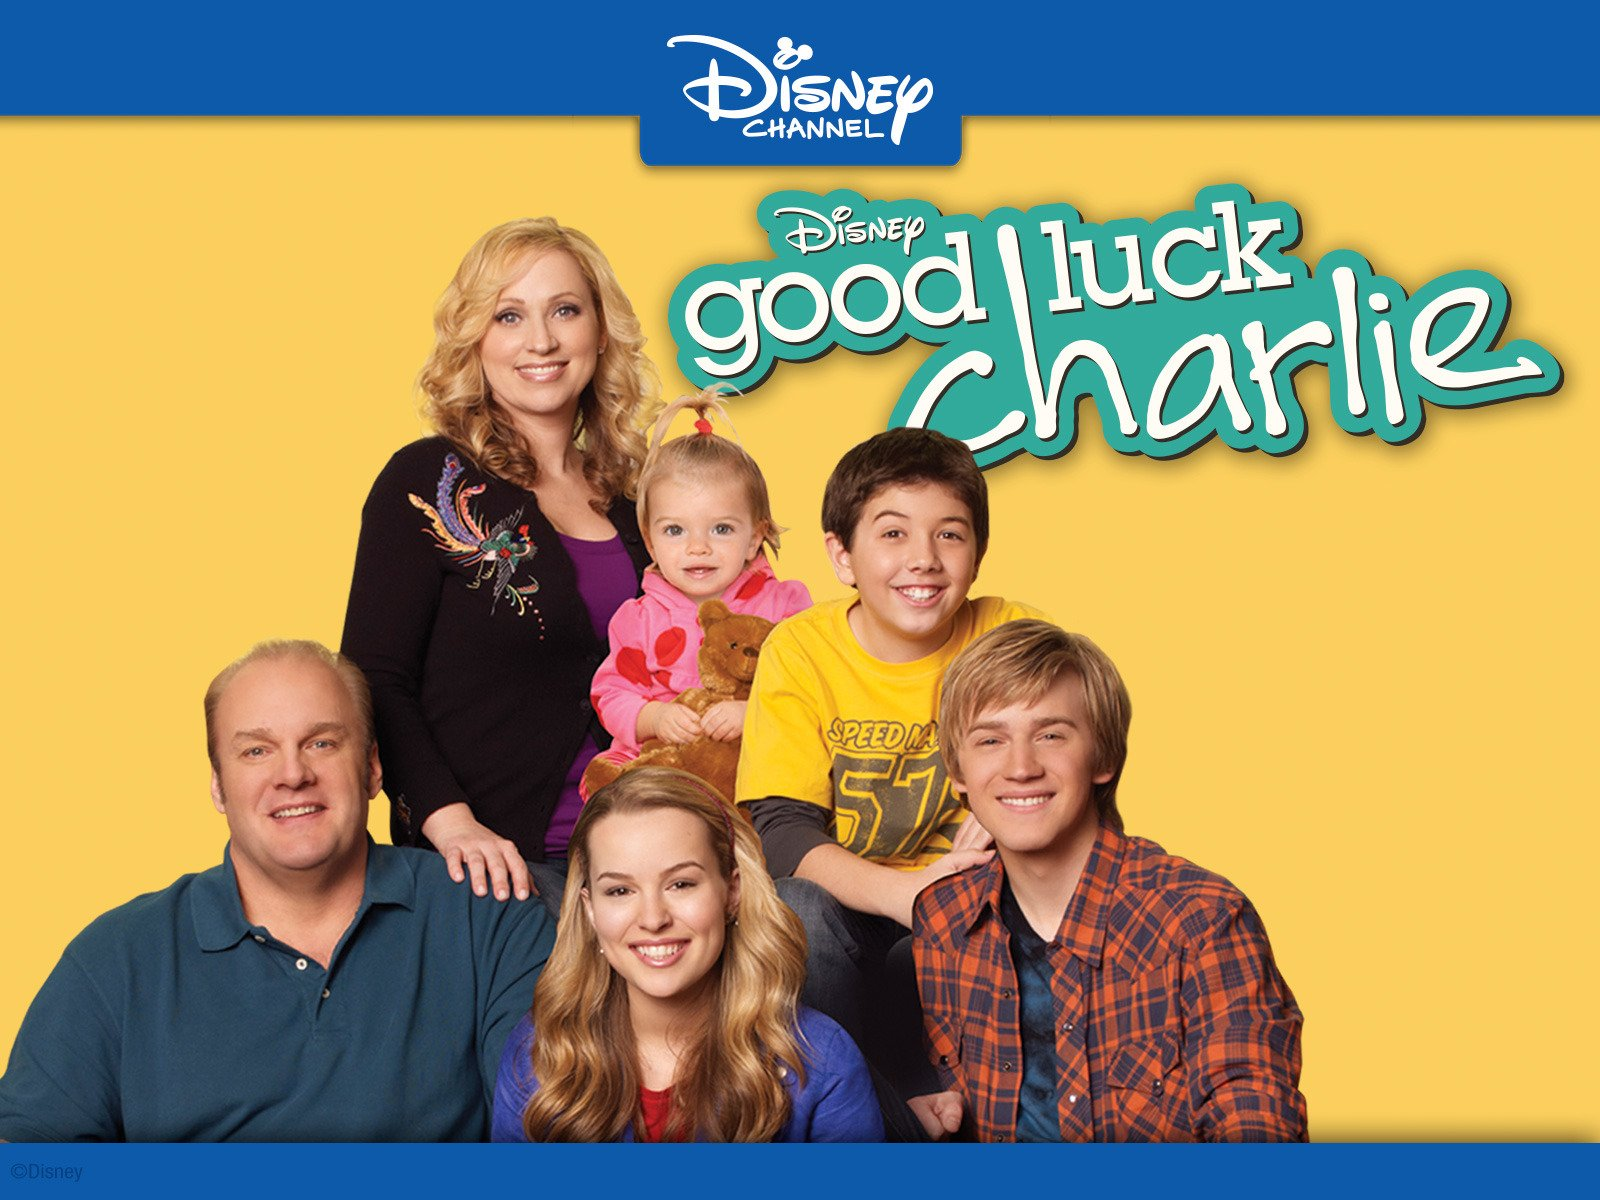 promo image from Disney show Good Luck Charlie